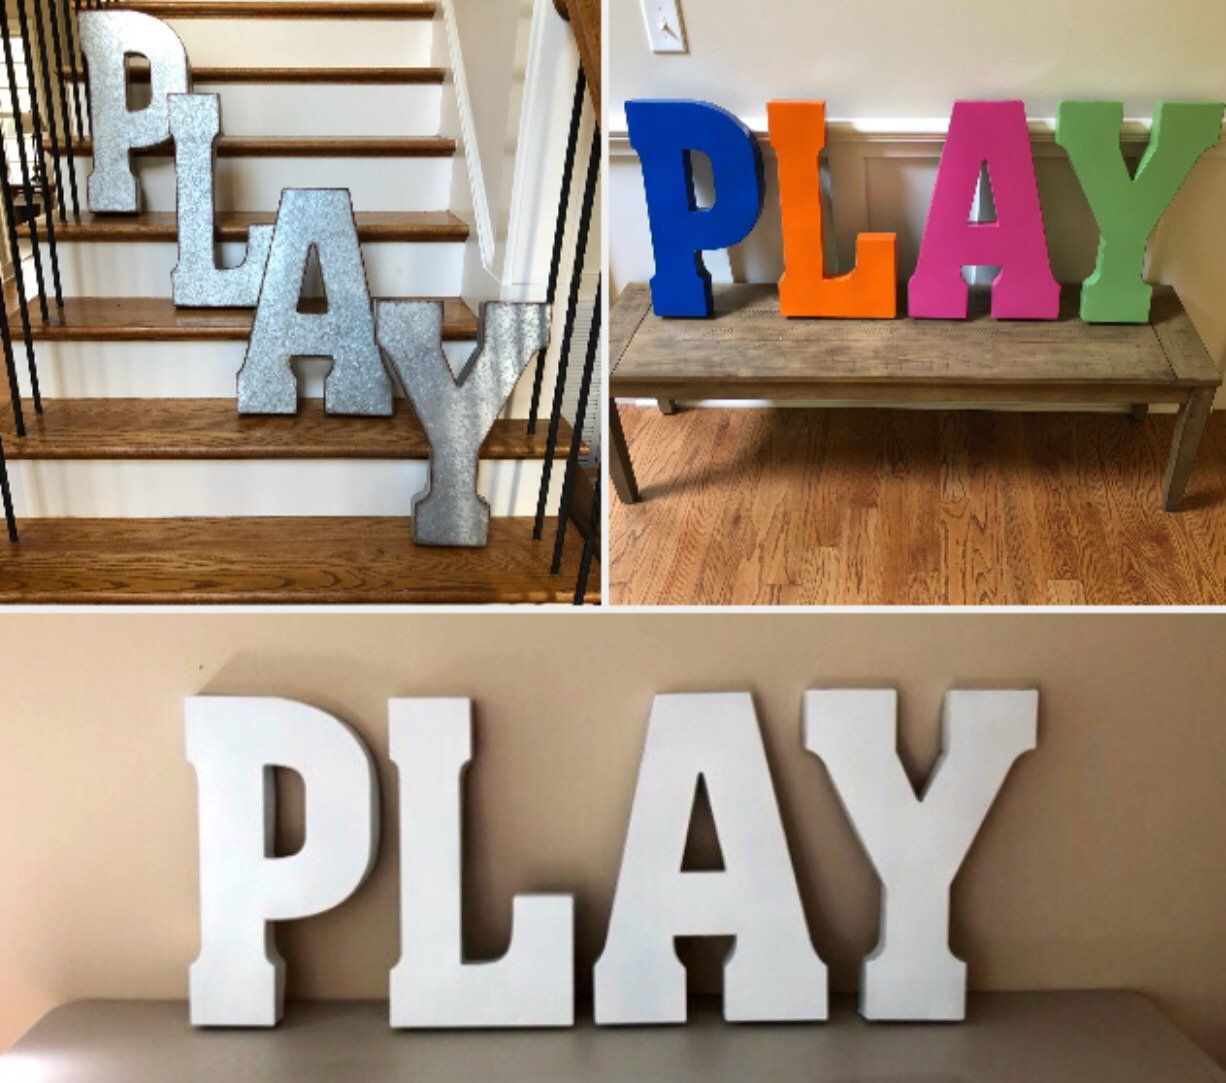 Extra Large Metal Letters Wall Decor Galvanized Metal Letters Love Wall Letters Wedding Decor 20 Inch Metal Metal Wall Letters Metal Letters Letter Wall Decor